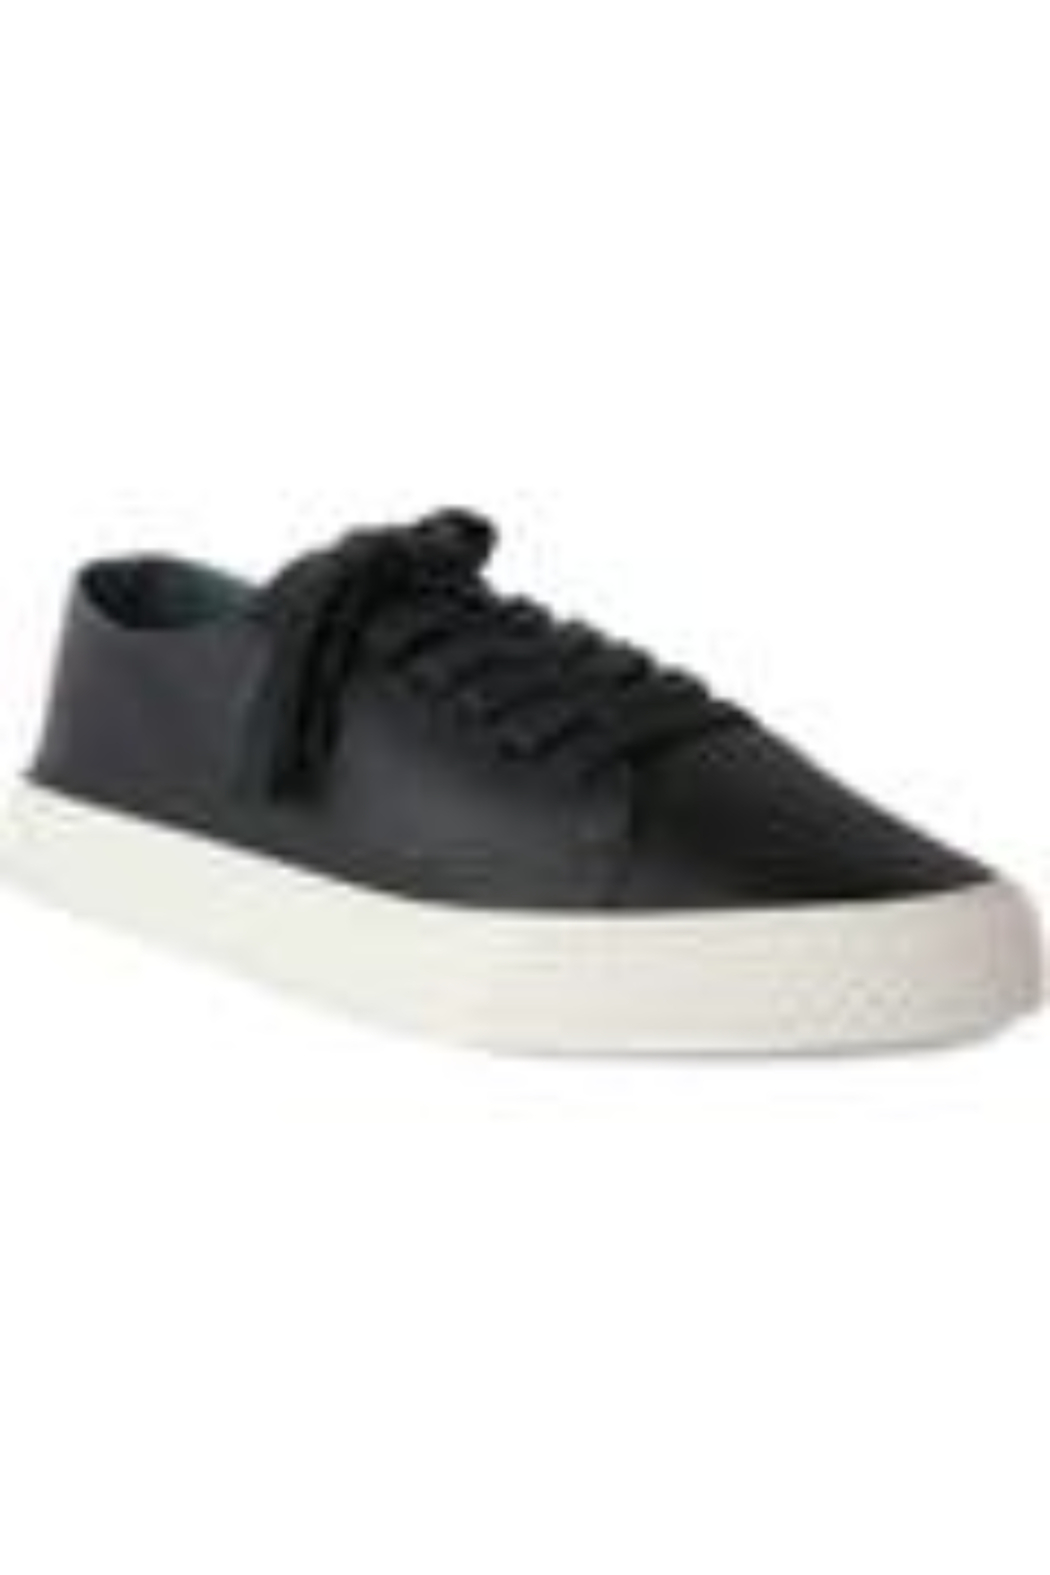 Band Of Gypsies Leather tie sneakers - Main Image